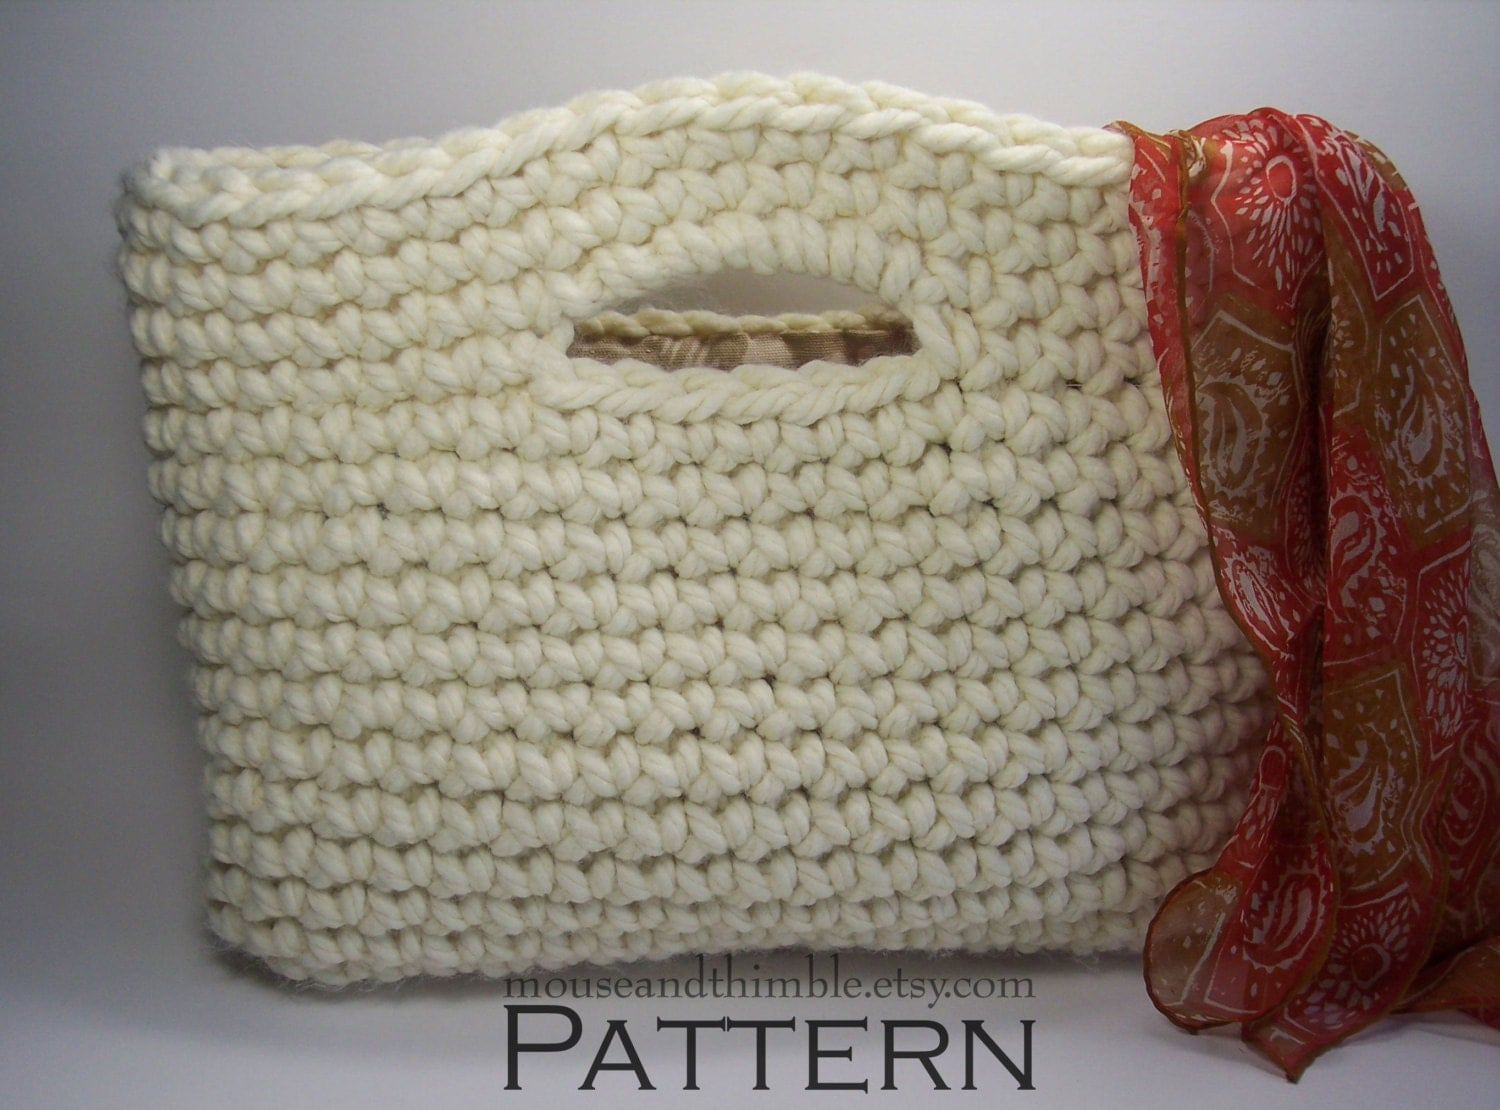 Chunky Basket Handbag Tote Easy Crochet PATTERN by MouseAndThimble